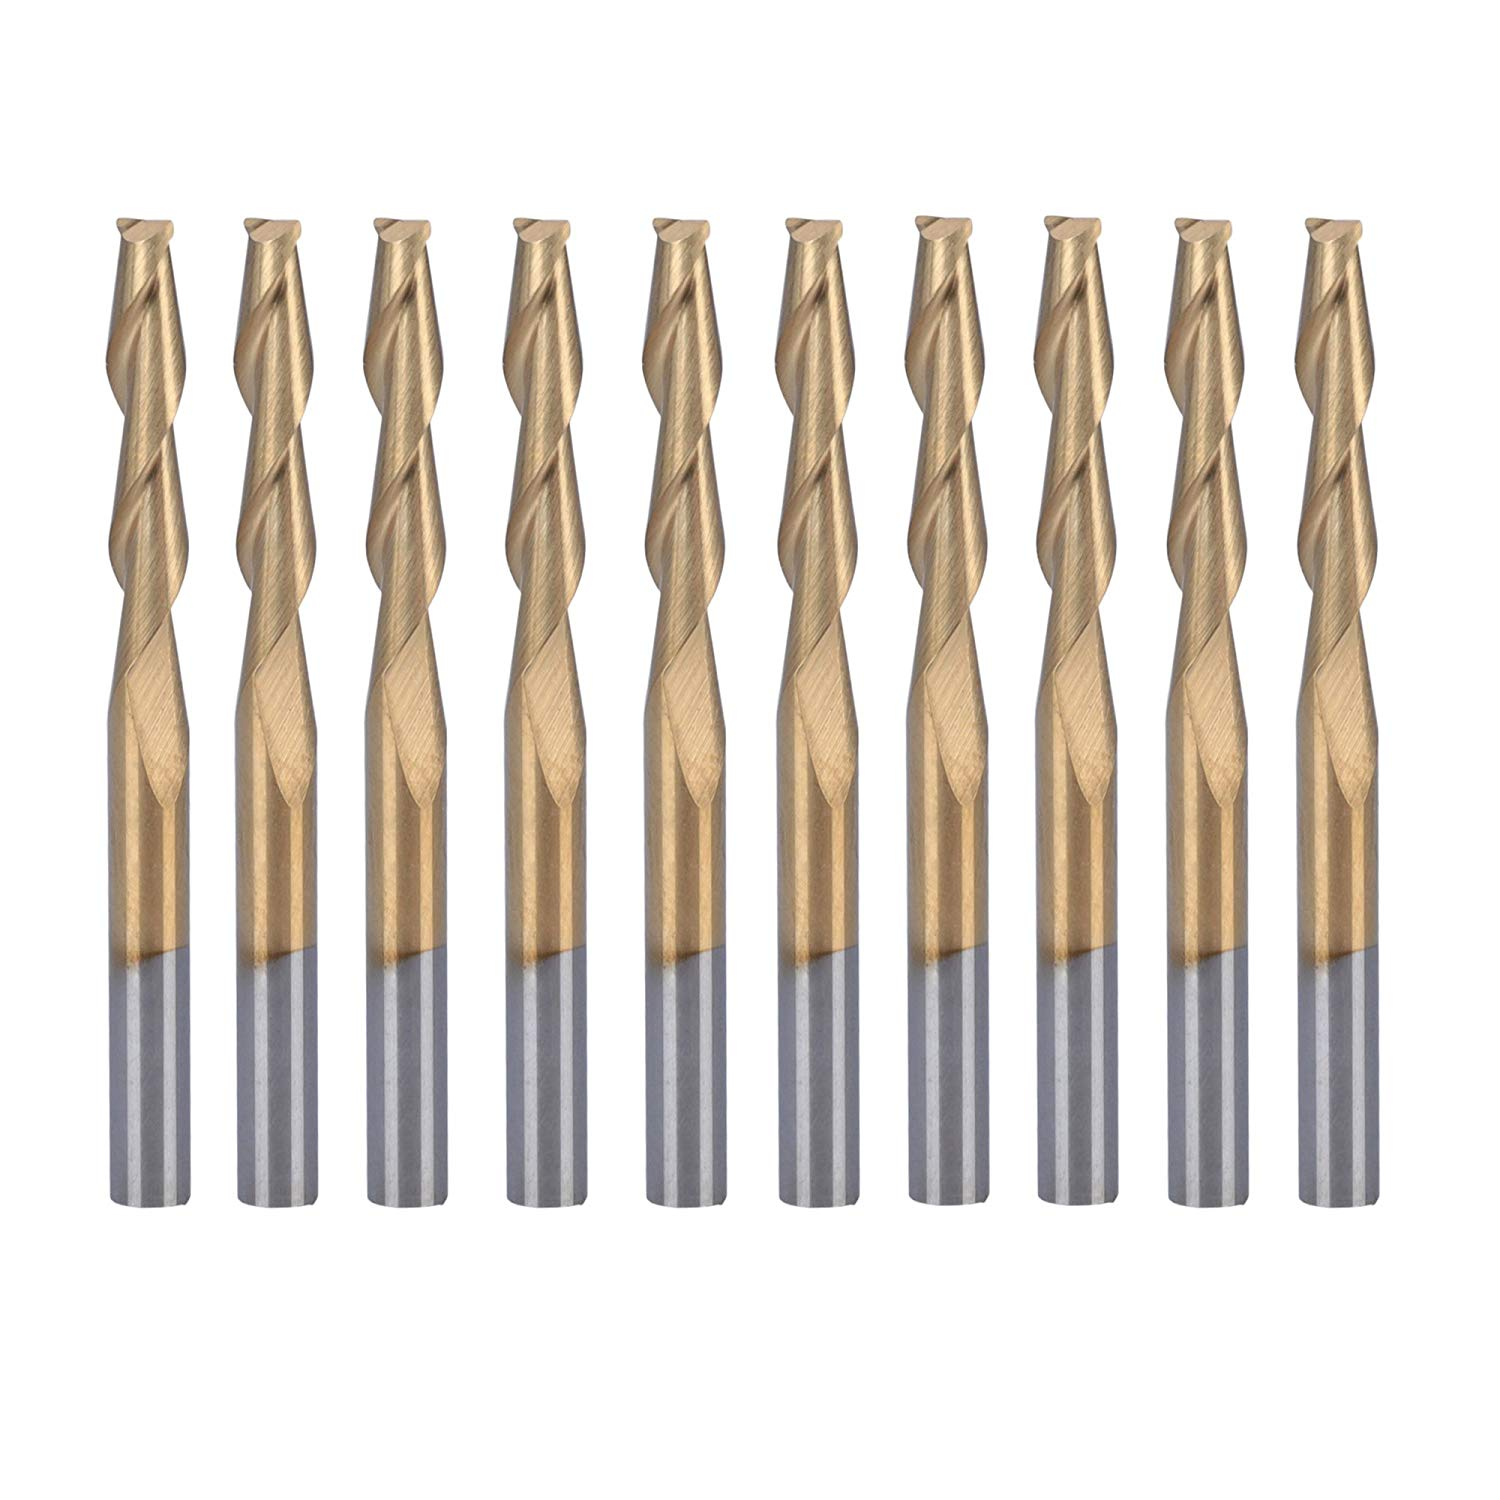 "HQMaster 10 Pack 1/8""(3.175mm) Shank Dia. Titanium Coated End Mill Spiral Router Bits Milling Cutter 2-Flute CNC Upcut Cutting Engraving Bit Tungsten Steel Tool Set 38.5mm OAL (3.175 x 17 x 38.5 mm)"